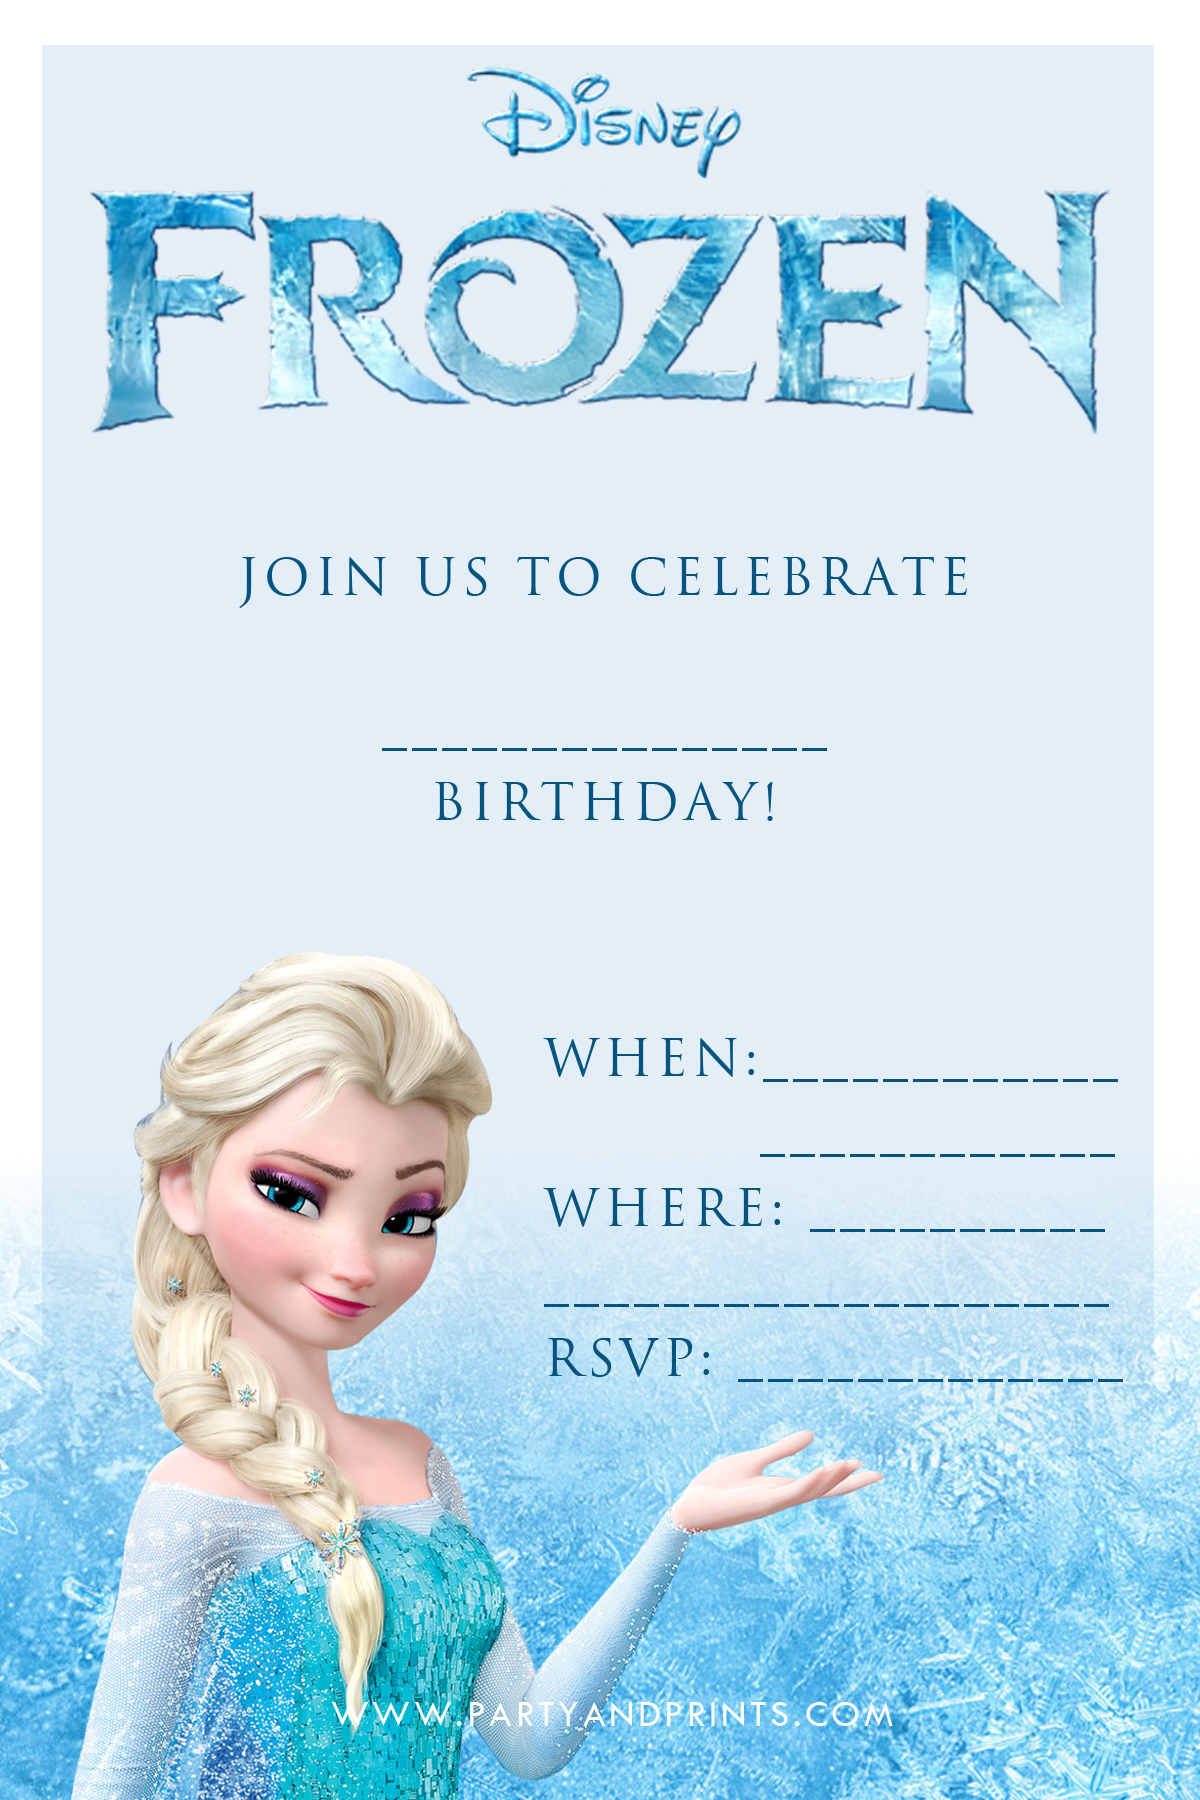 frozen themed birthday invitation templates ; easy-on-the-eye-Frozen-Birthday-Invitations-Printable-Free-as-pretty-Party-invitation-template-designs-for-you-816201